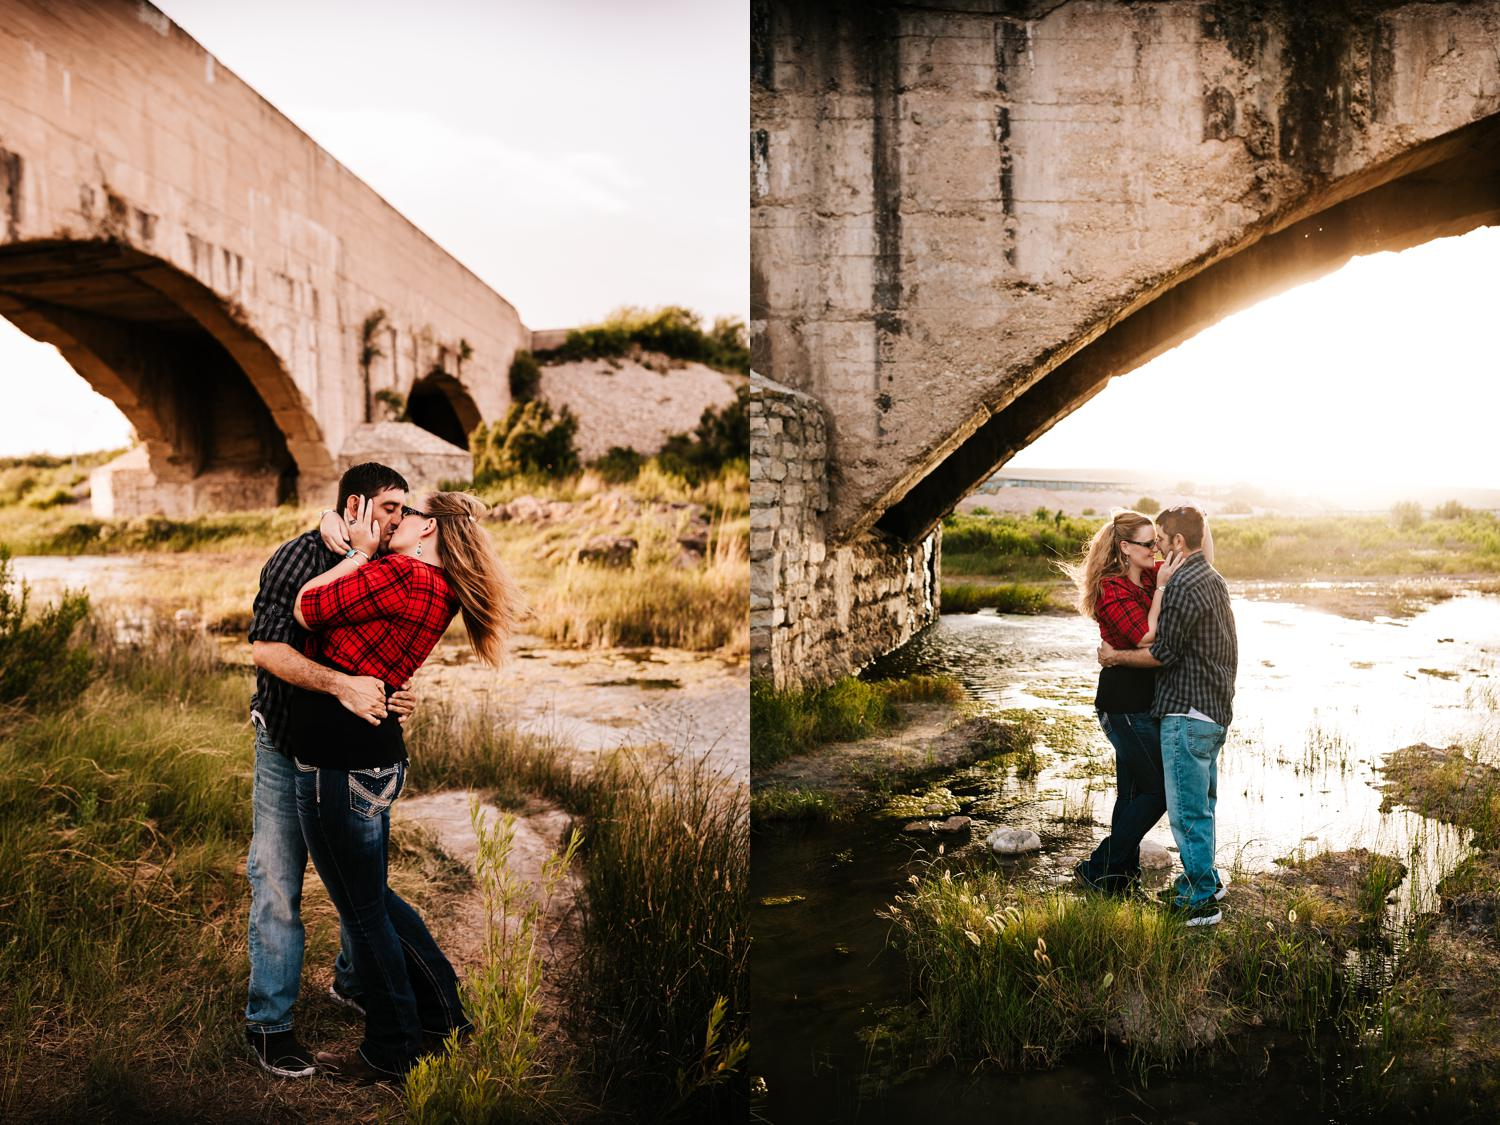 6. adventurous-new-mexico-fun-carlsbad-new-mexico-flumes-engagement-wedding-photographer-natural-andrea-van-orsouw-photography3.jpg